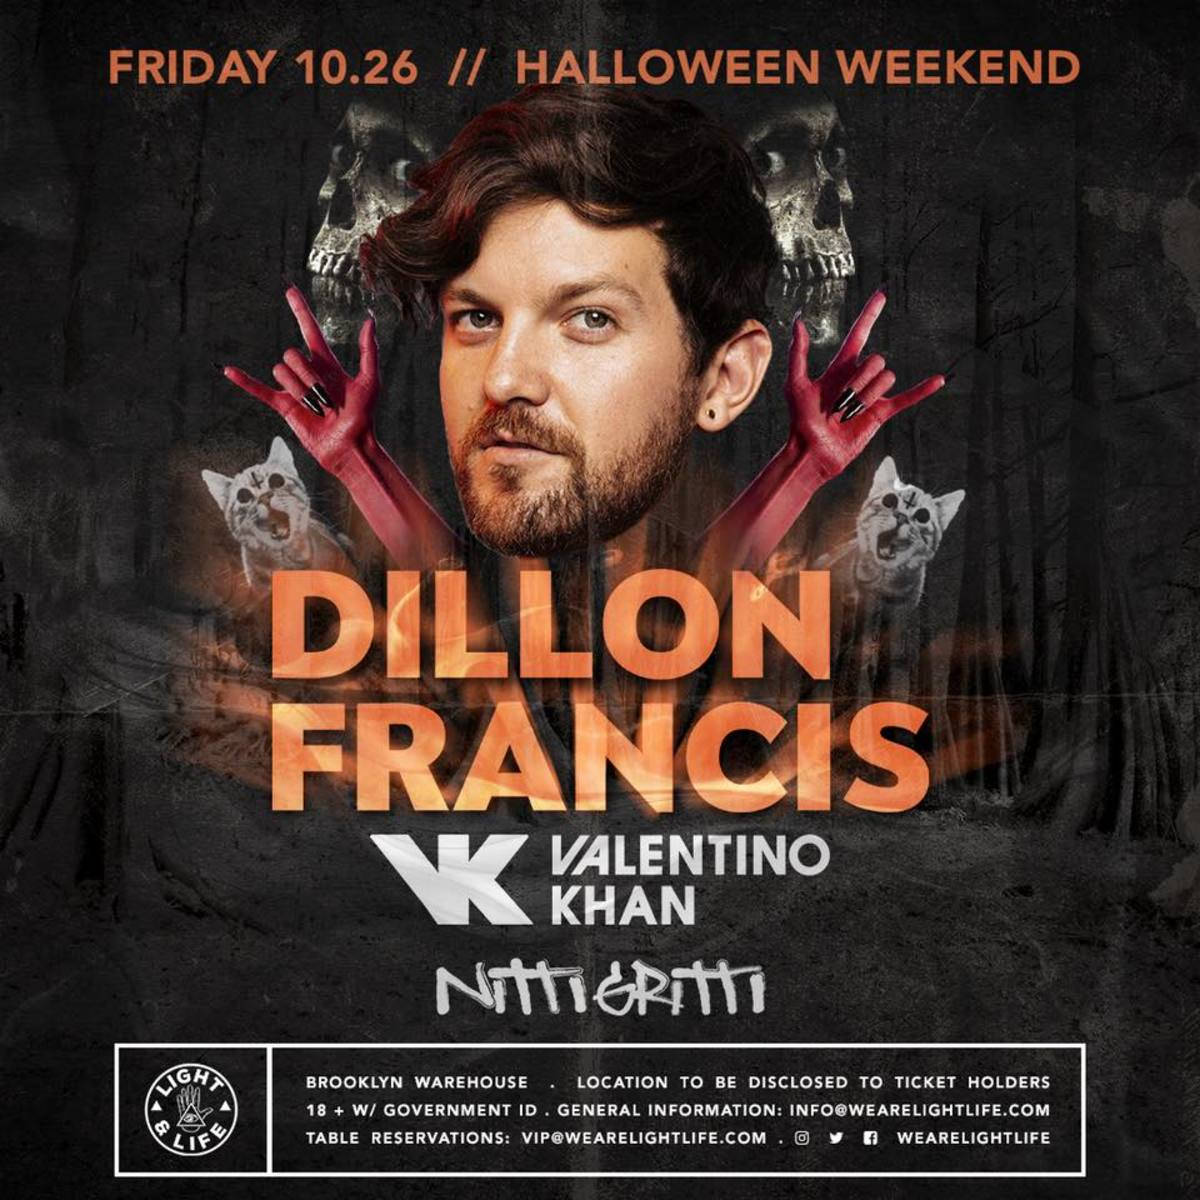 Light & Life Dillon Francis Halloween NYC Valentino Khan Nitti Gritti